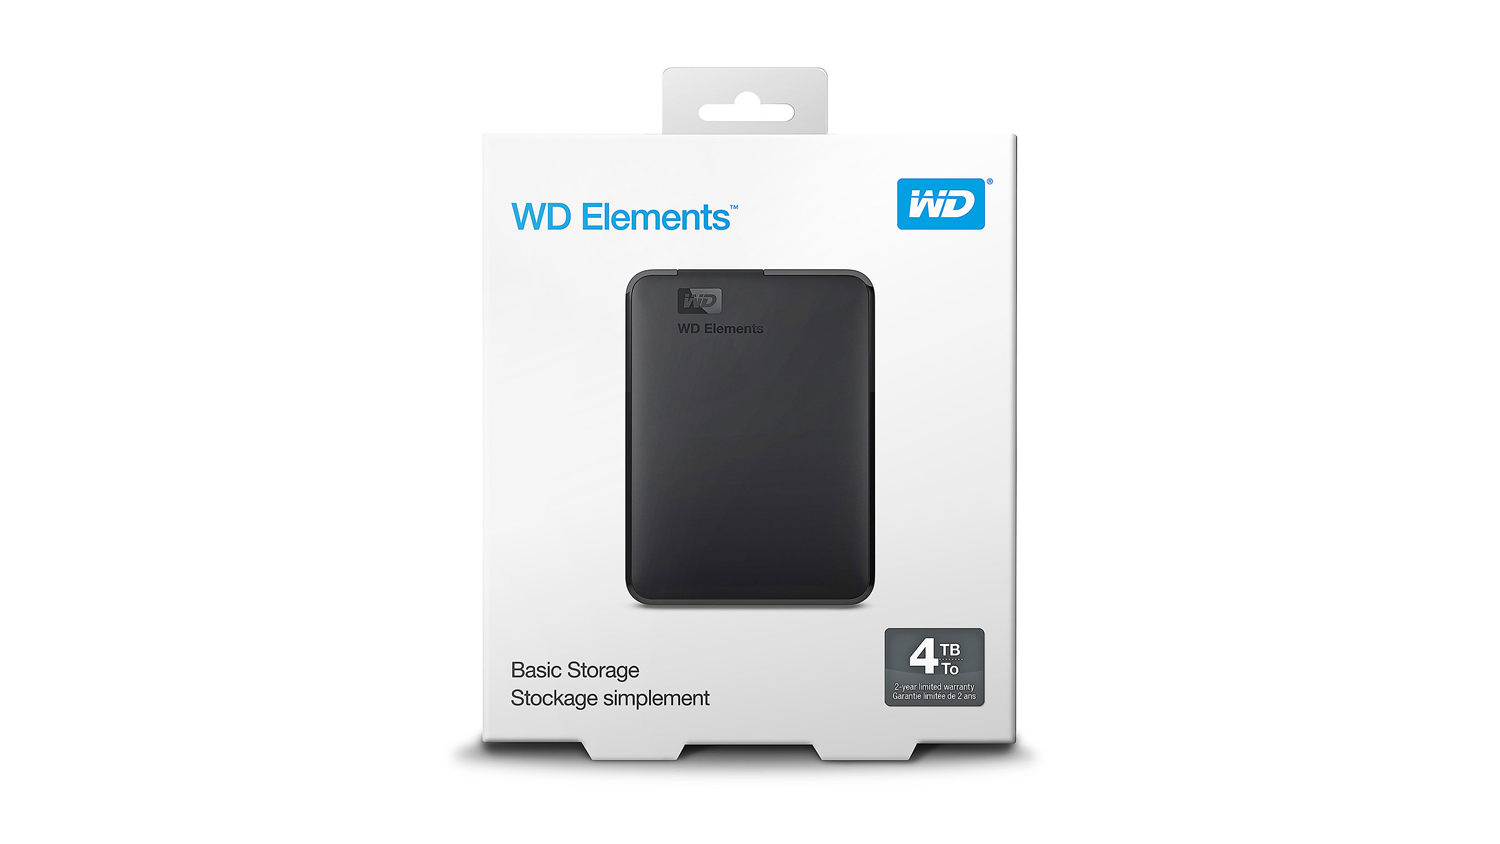 WD Elements USB 3.0 Portable Hard Drive - Box front view